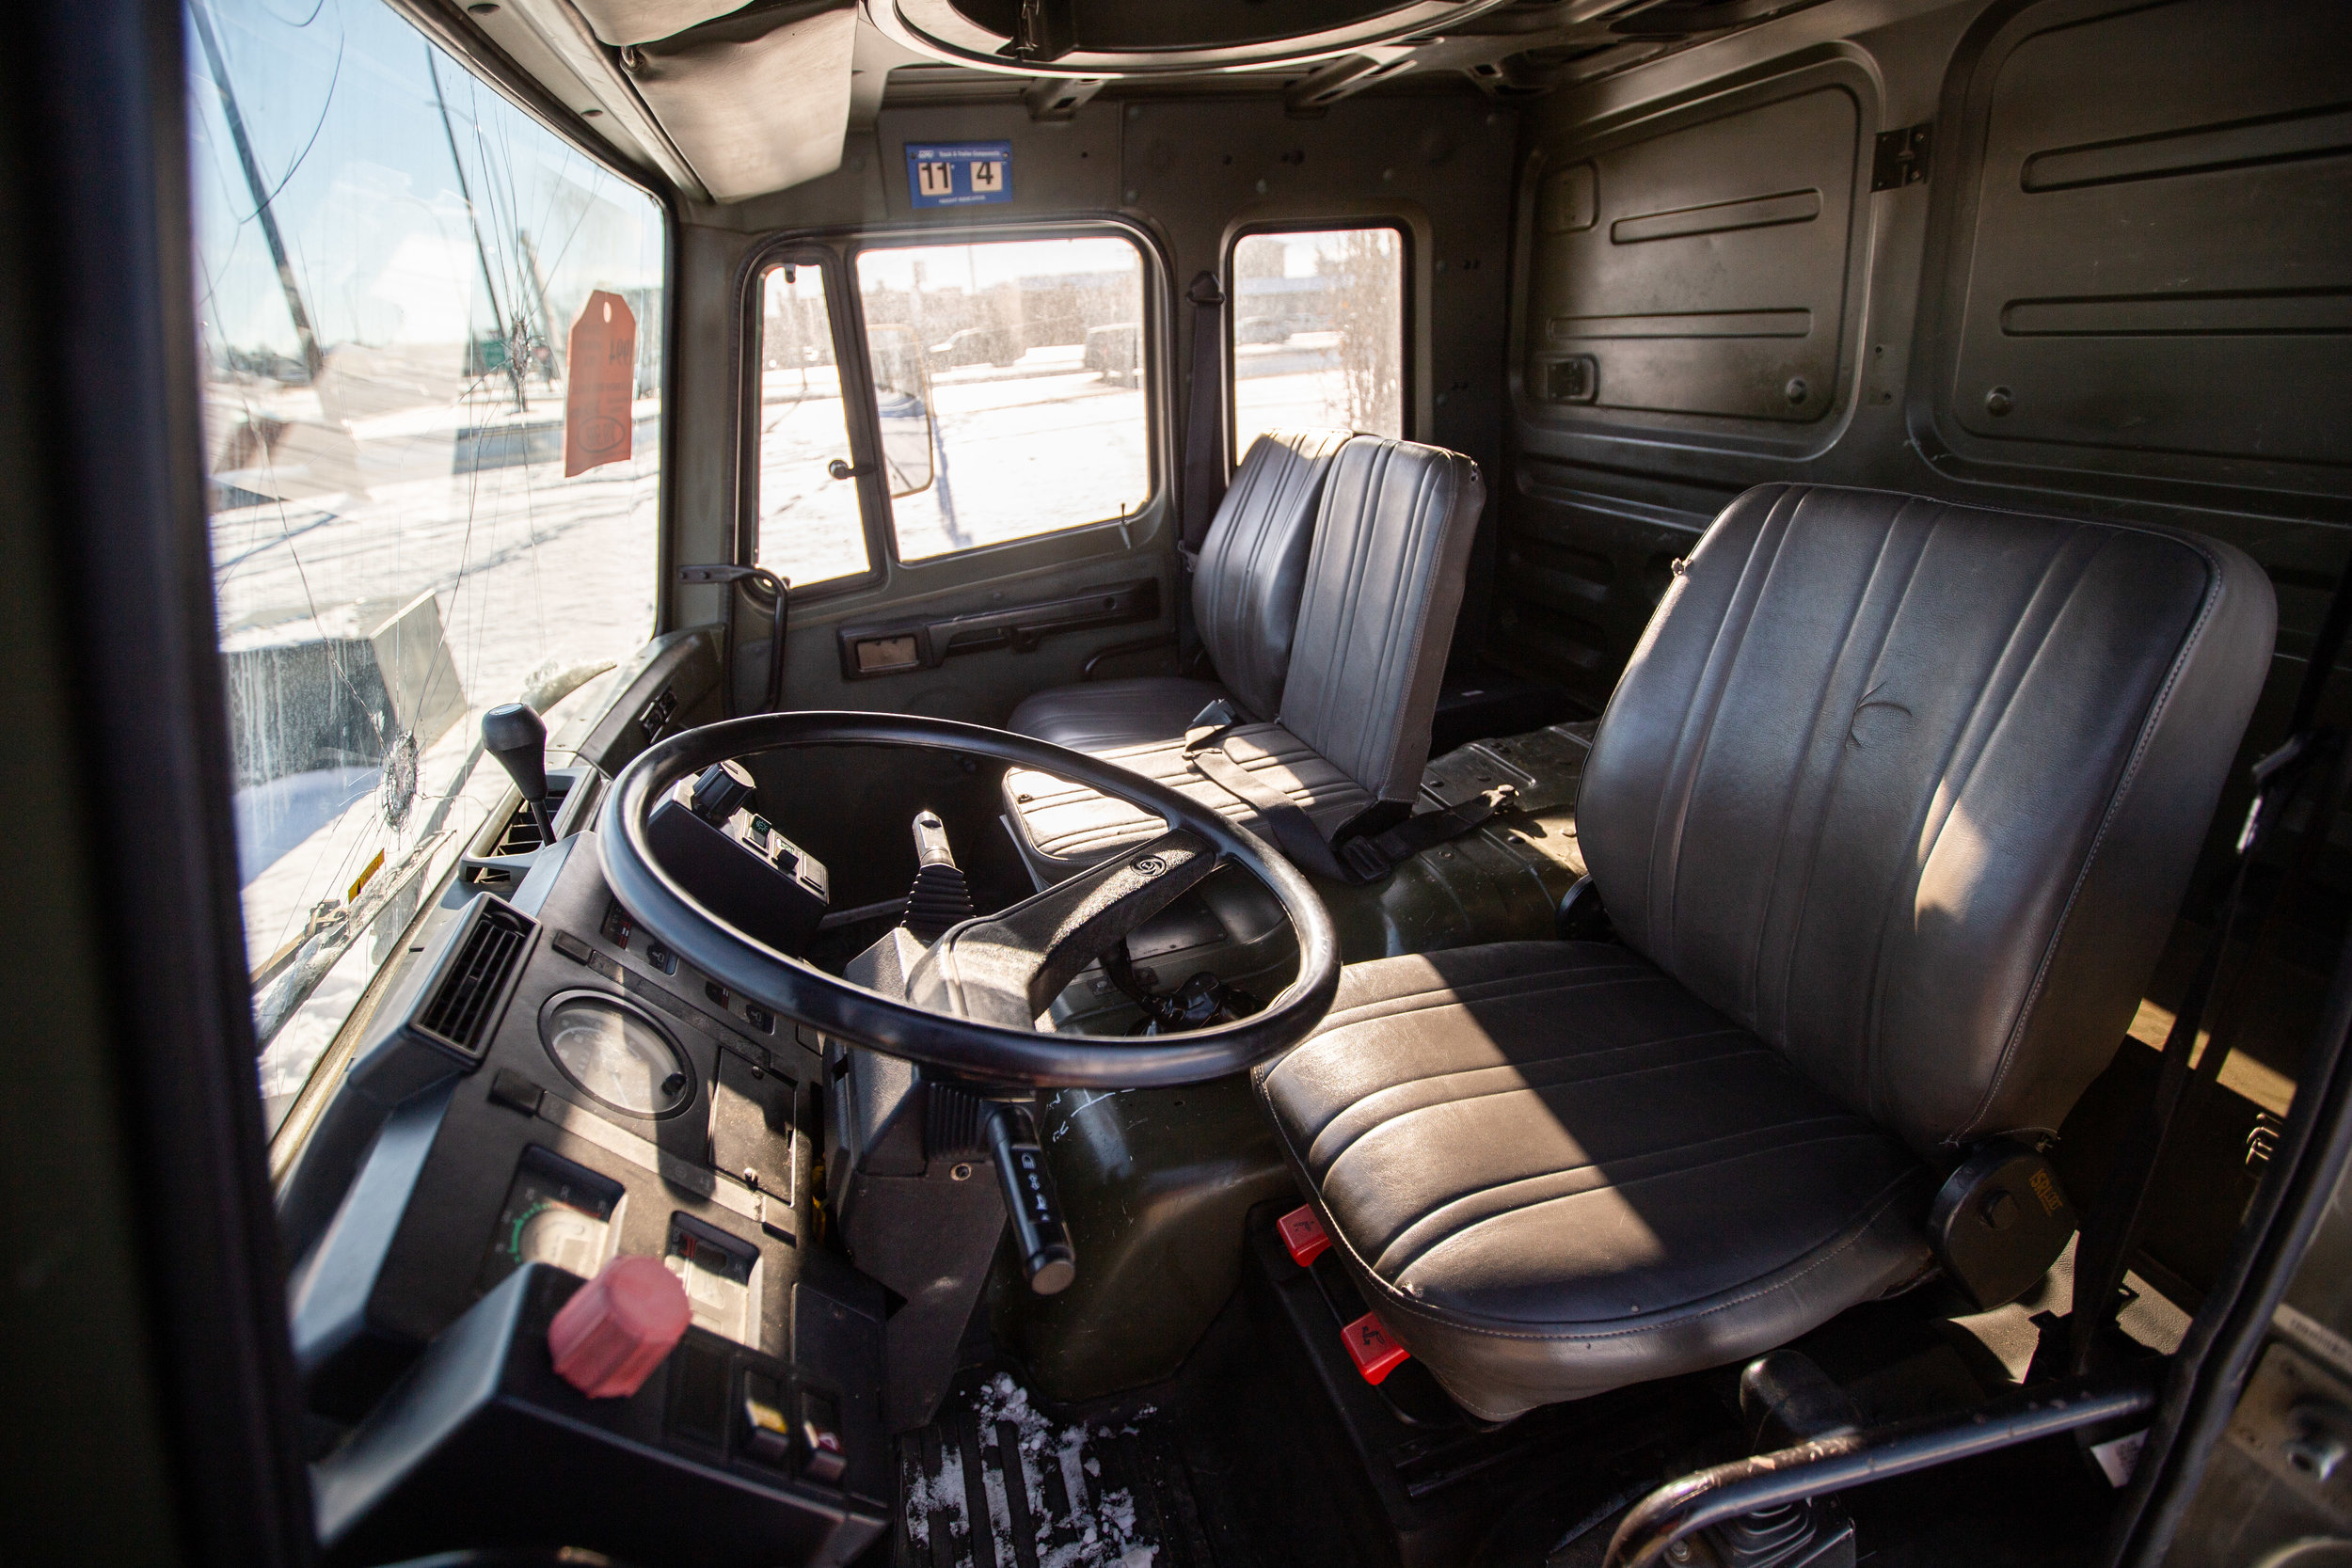 Big open interior, great for stretching out and enjoying a leisurely drive.